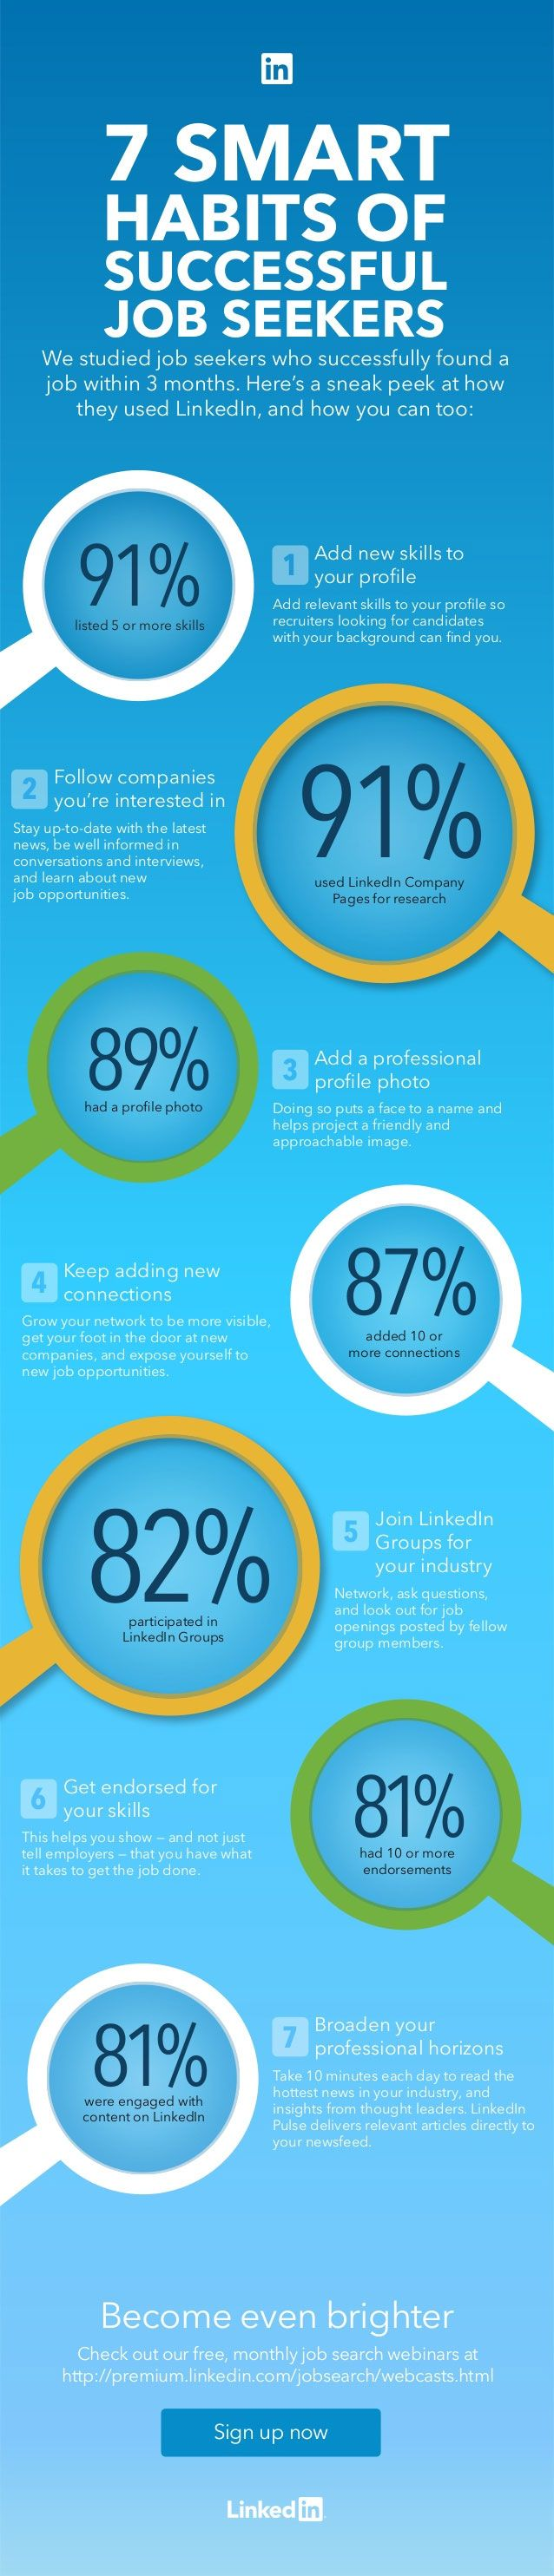 Habits of Successful Job Seekers - Webmag.co | Digital Resources for Net Professionals